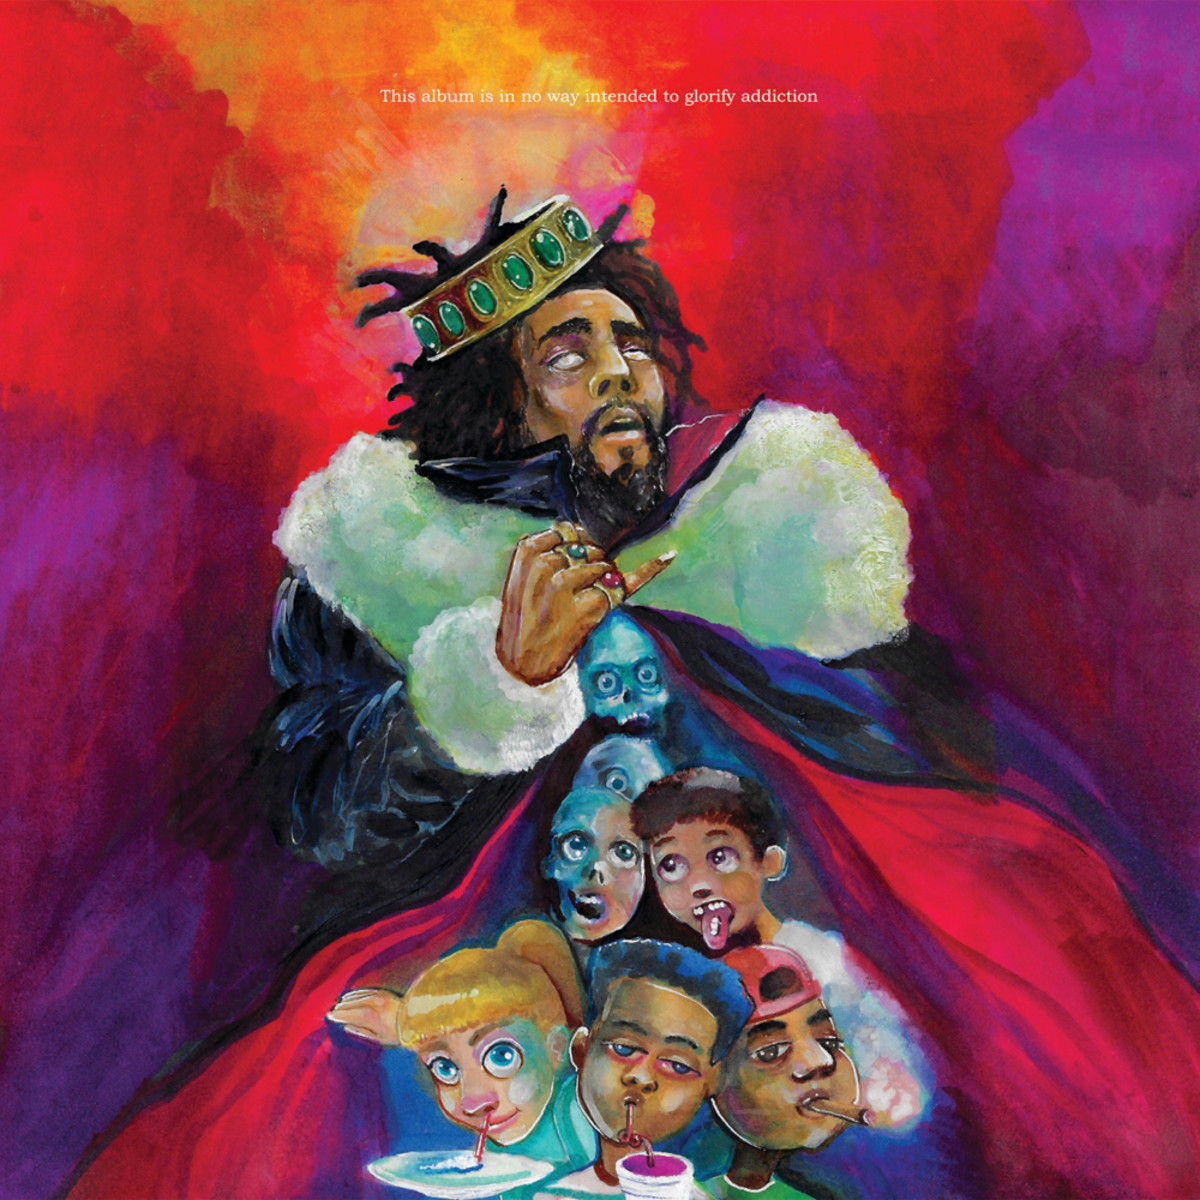 j-cole-kod-album-art